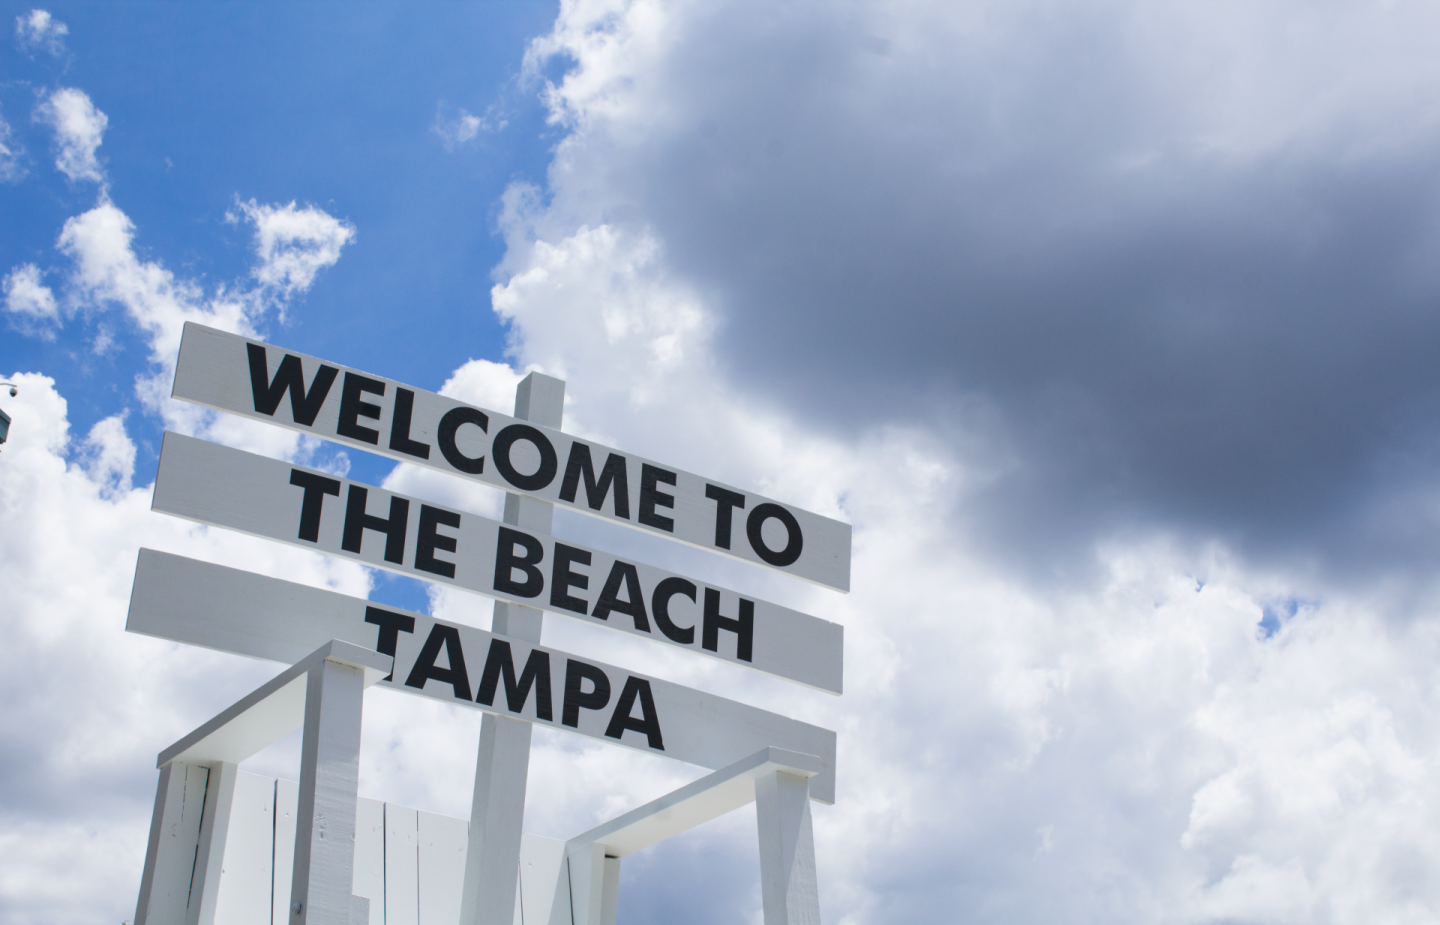 Welcome to The Beach Tampa